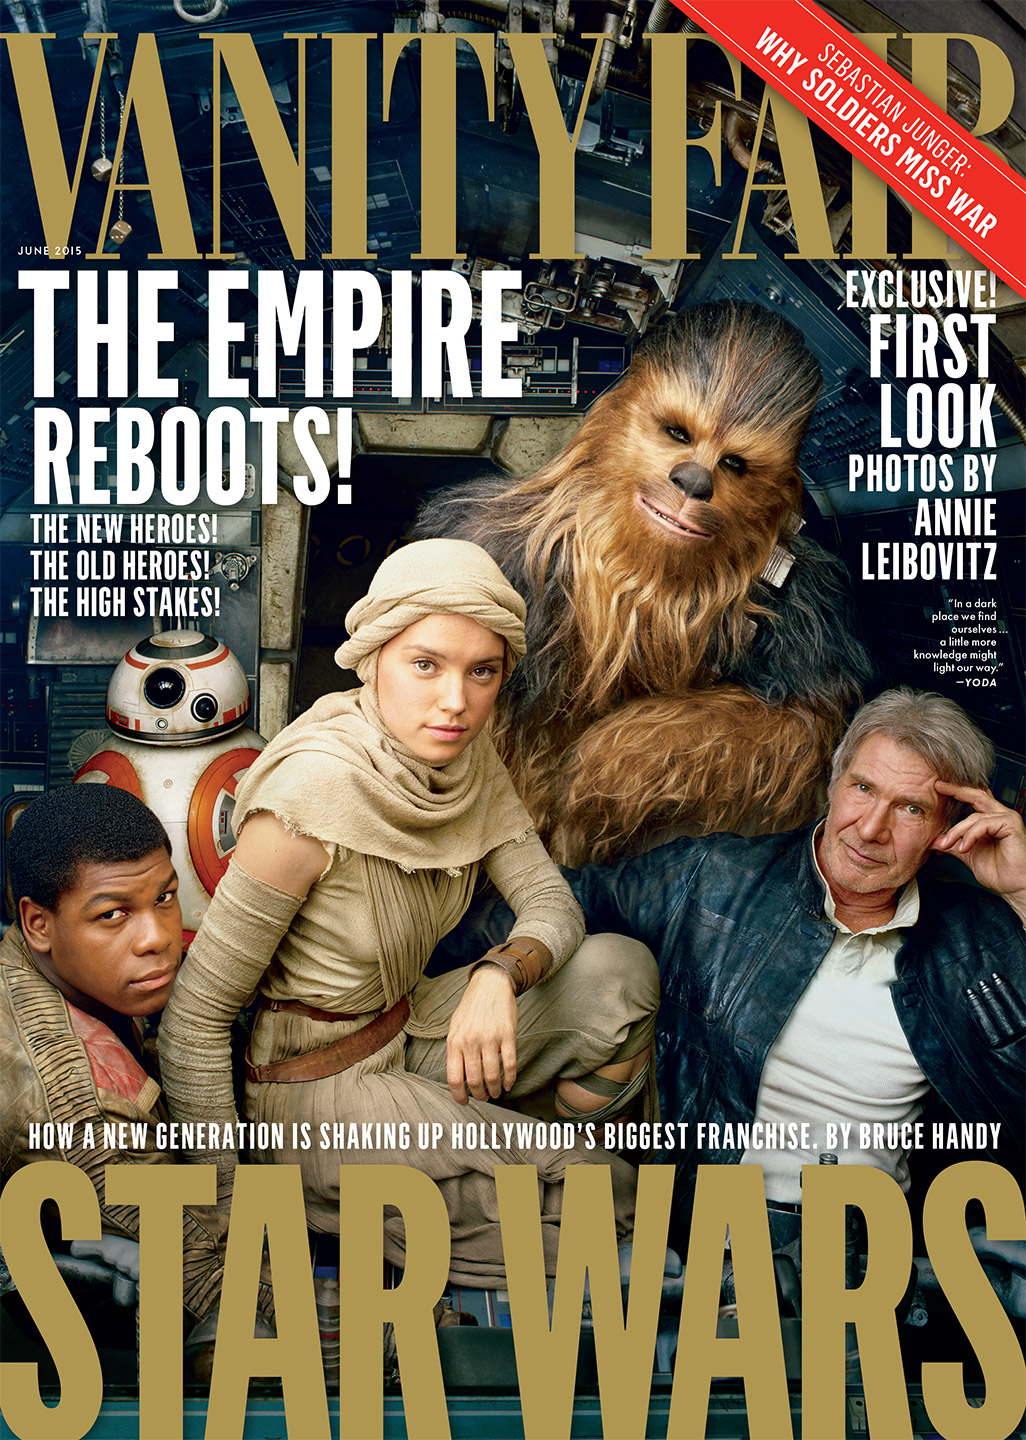 Star Wars The Force Awakens Meets Vanity Fair